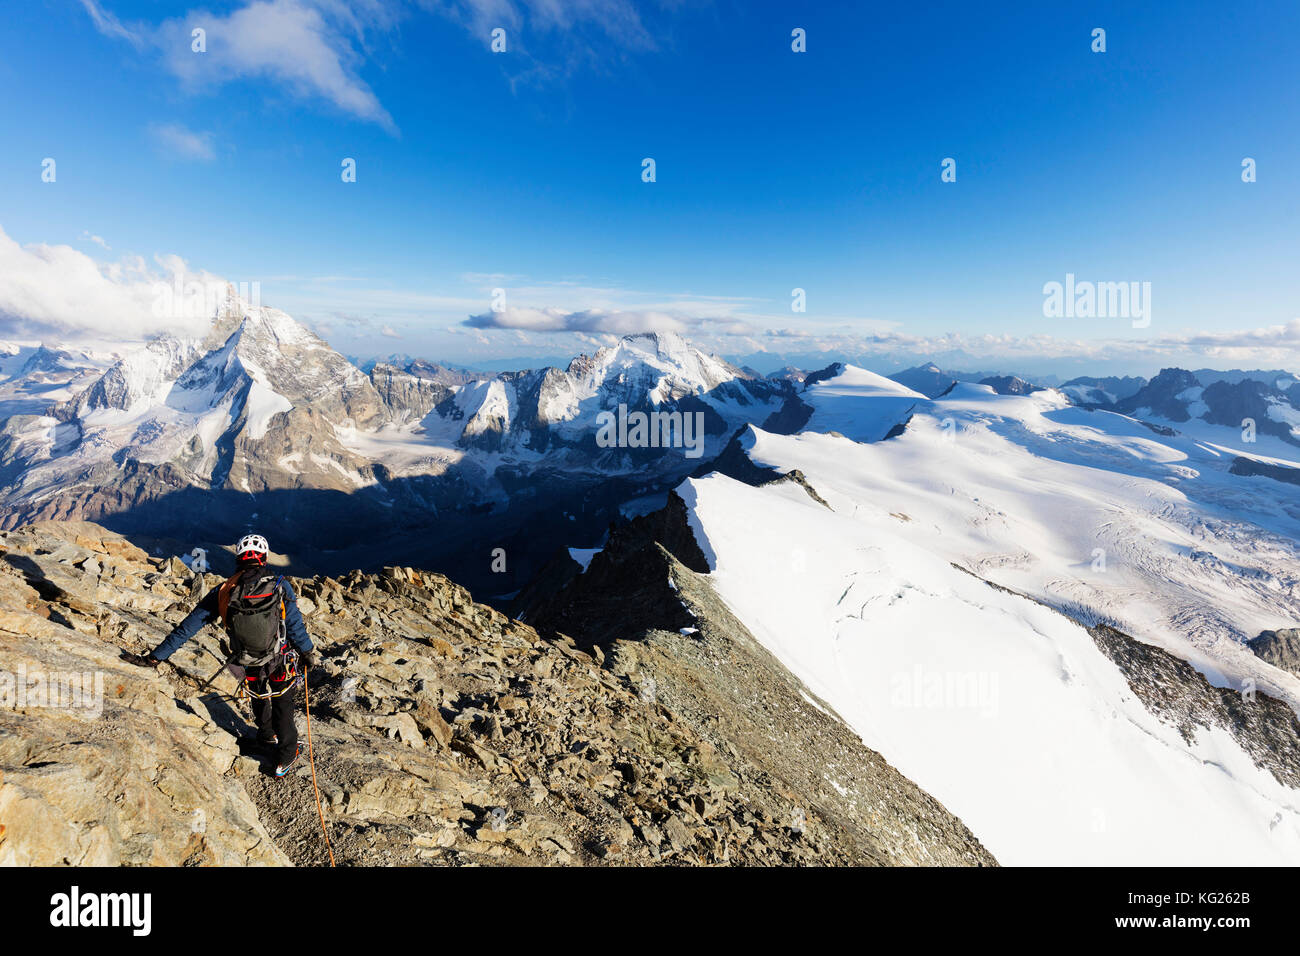 Climber on south ridge of Dent Blanche, 4357m, with view to the Matterhorn, Valais, Swiss Alps, Switzerland, Europe - Stock Image